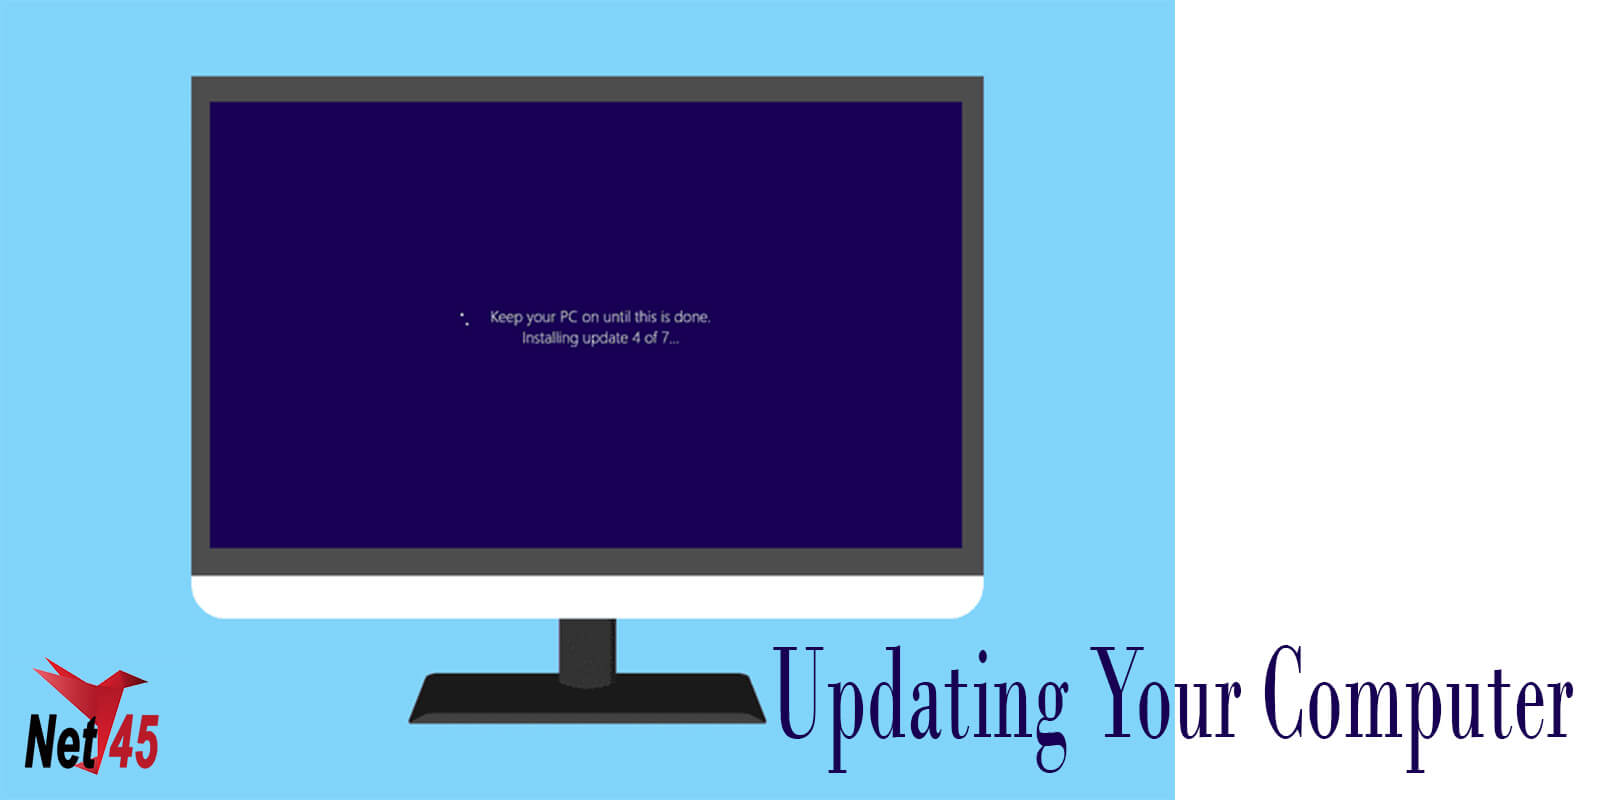 computer,updating your computer,updating your computer to windows 10,updating computers,protect your computer,macos could not be instead on your computer,update,update without a computer,gaming computer,diy computers,set up new computer,personal computer,how to update your uefo,how to build a computer,computers,kodi on my computer,dell computers,computer fixes,how to update your bios,computer hardware